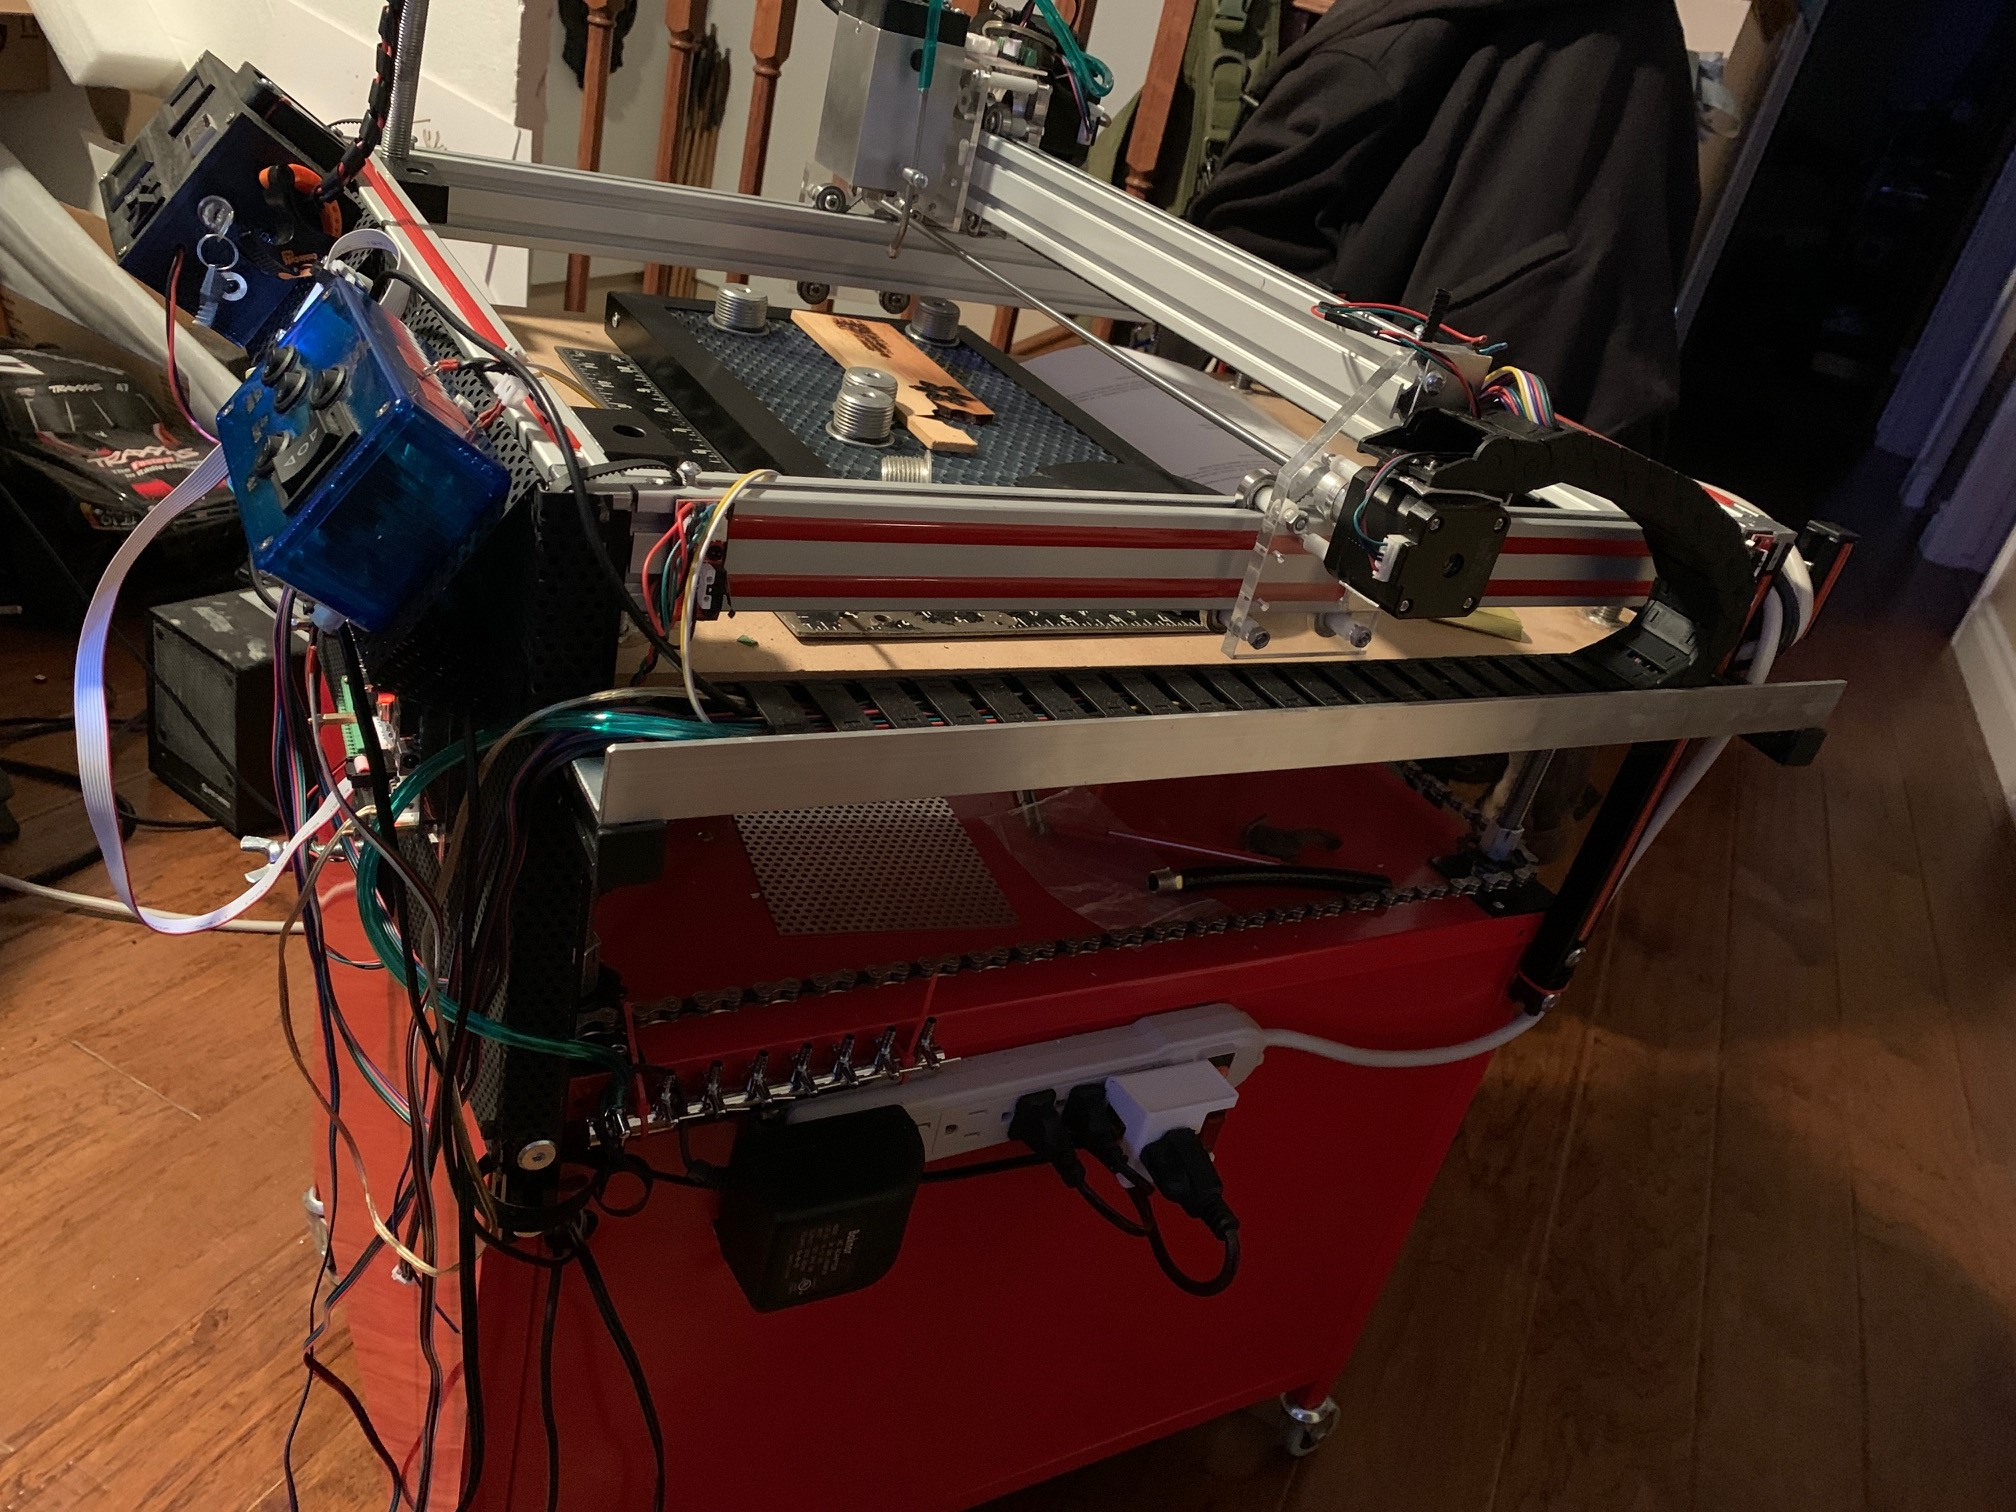 Learn how to design and build my own laser CNC